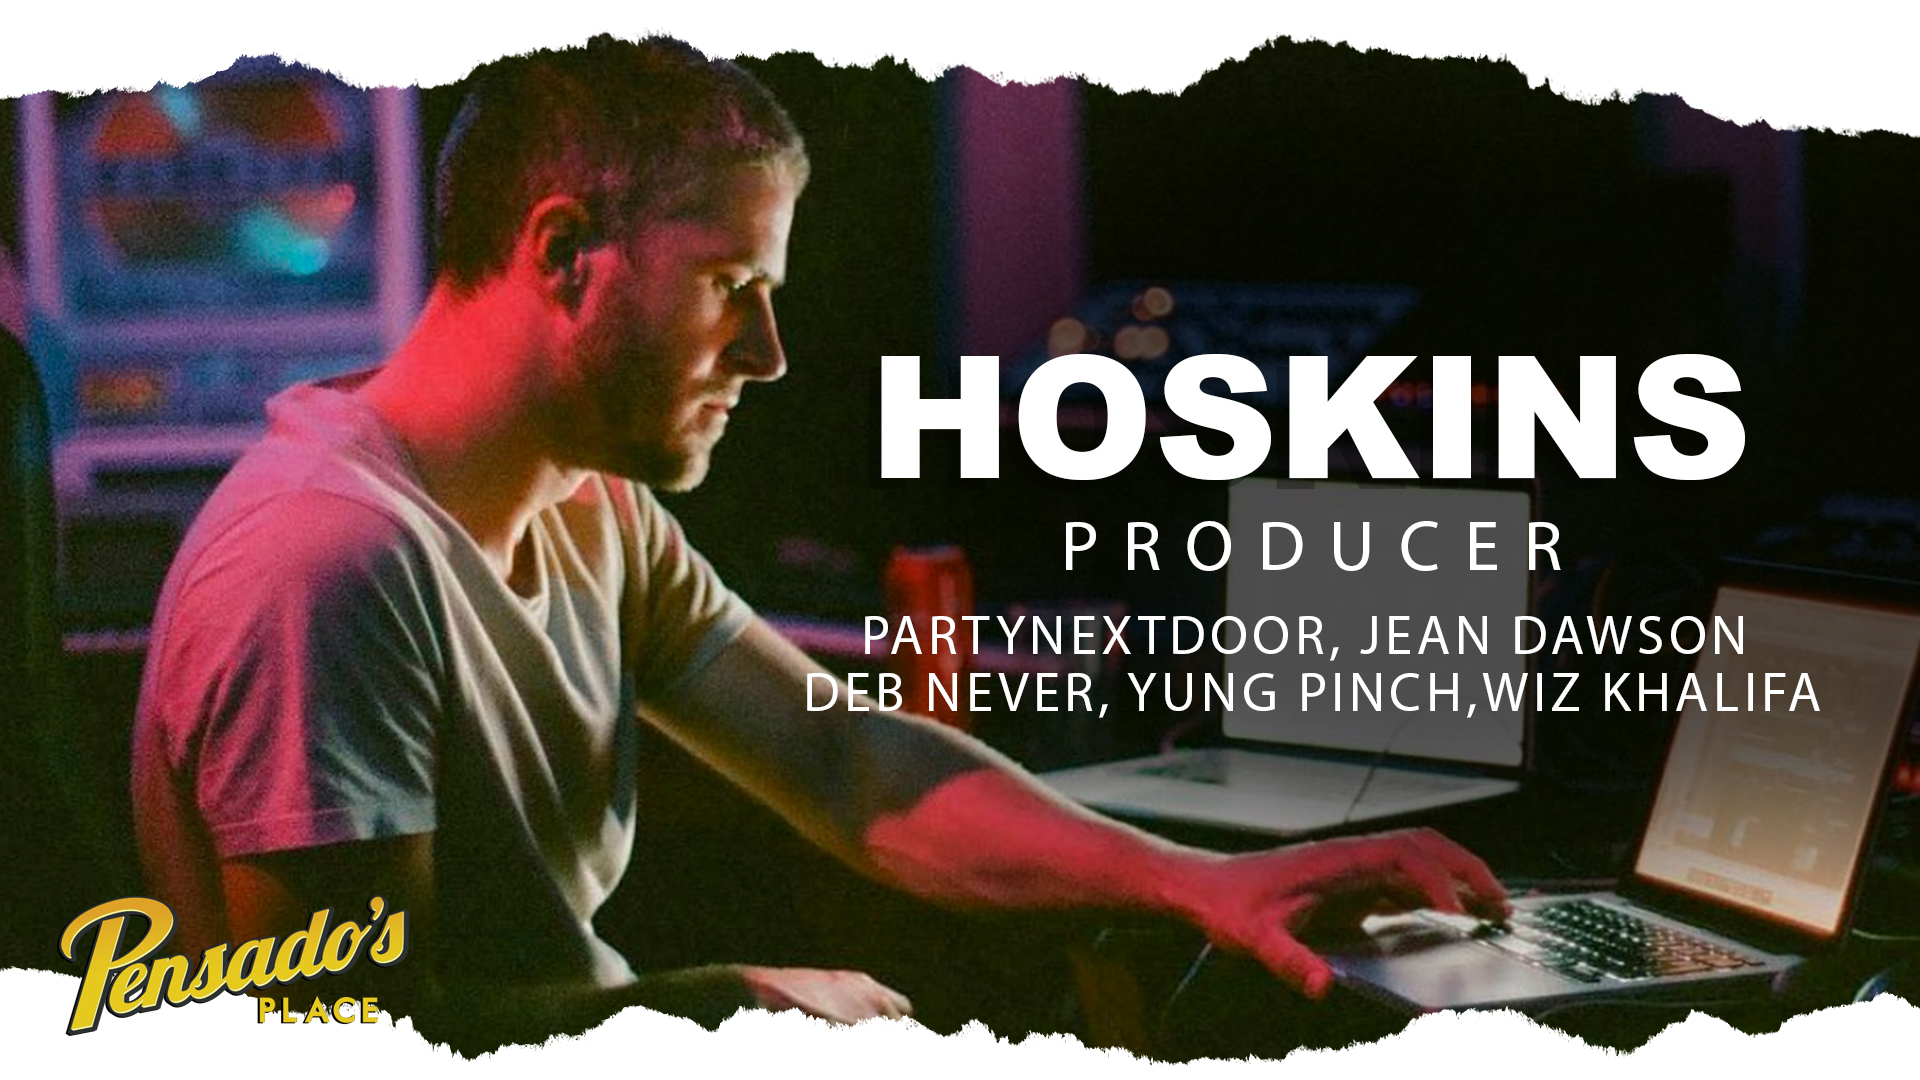 PARTYNEXTDOOR Producer, Hoskins